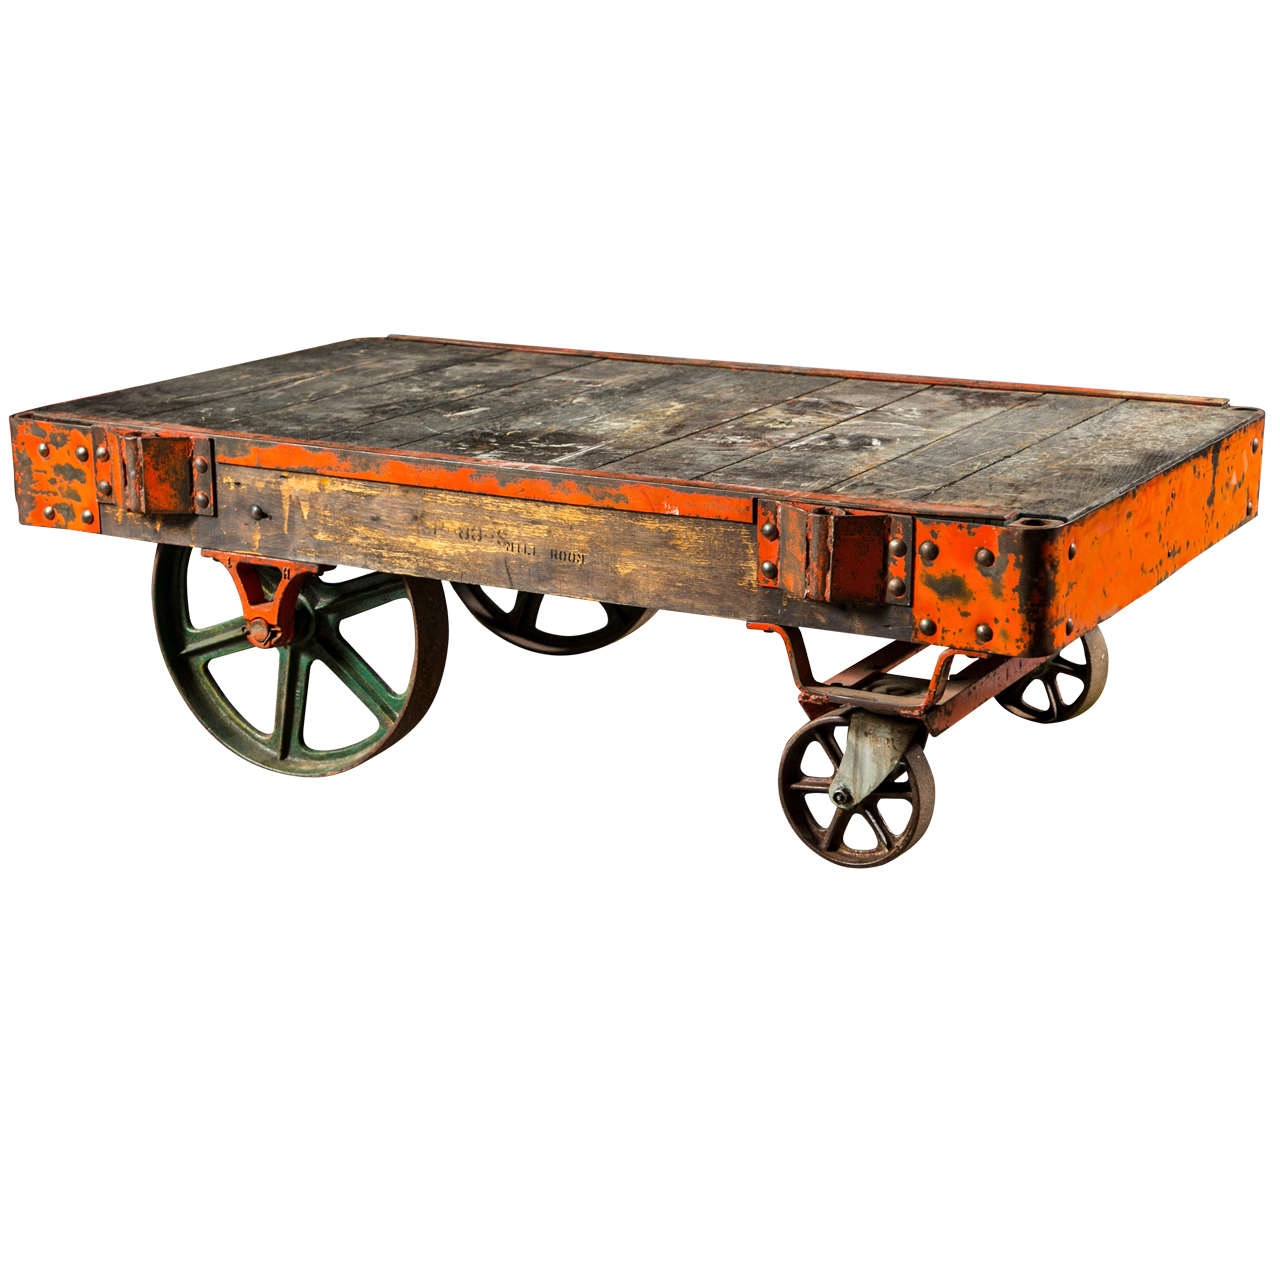 American Industrial Factory Cart Mid 20th C At 1stdibs